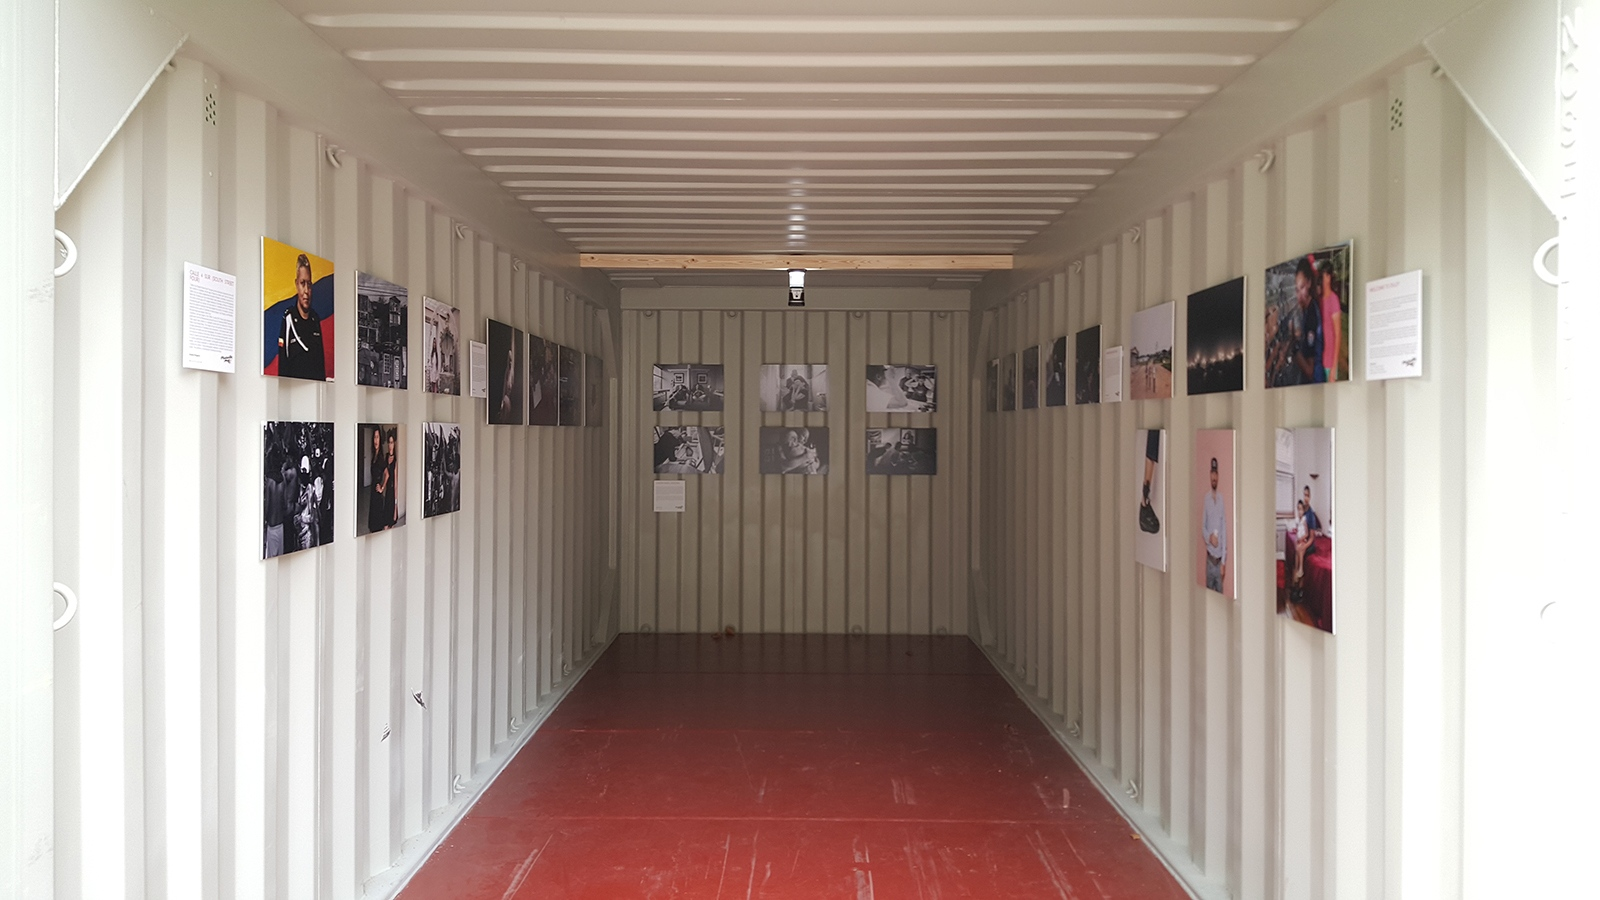 """Calle 4 Sur"", International Photo Festival Leiden , as part of Photoville's 20 Emerging American Photographers Exhibition."